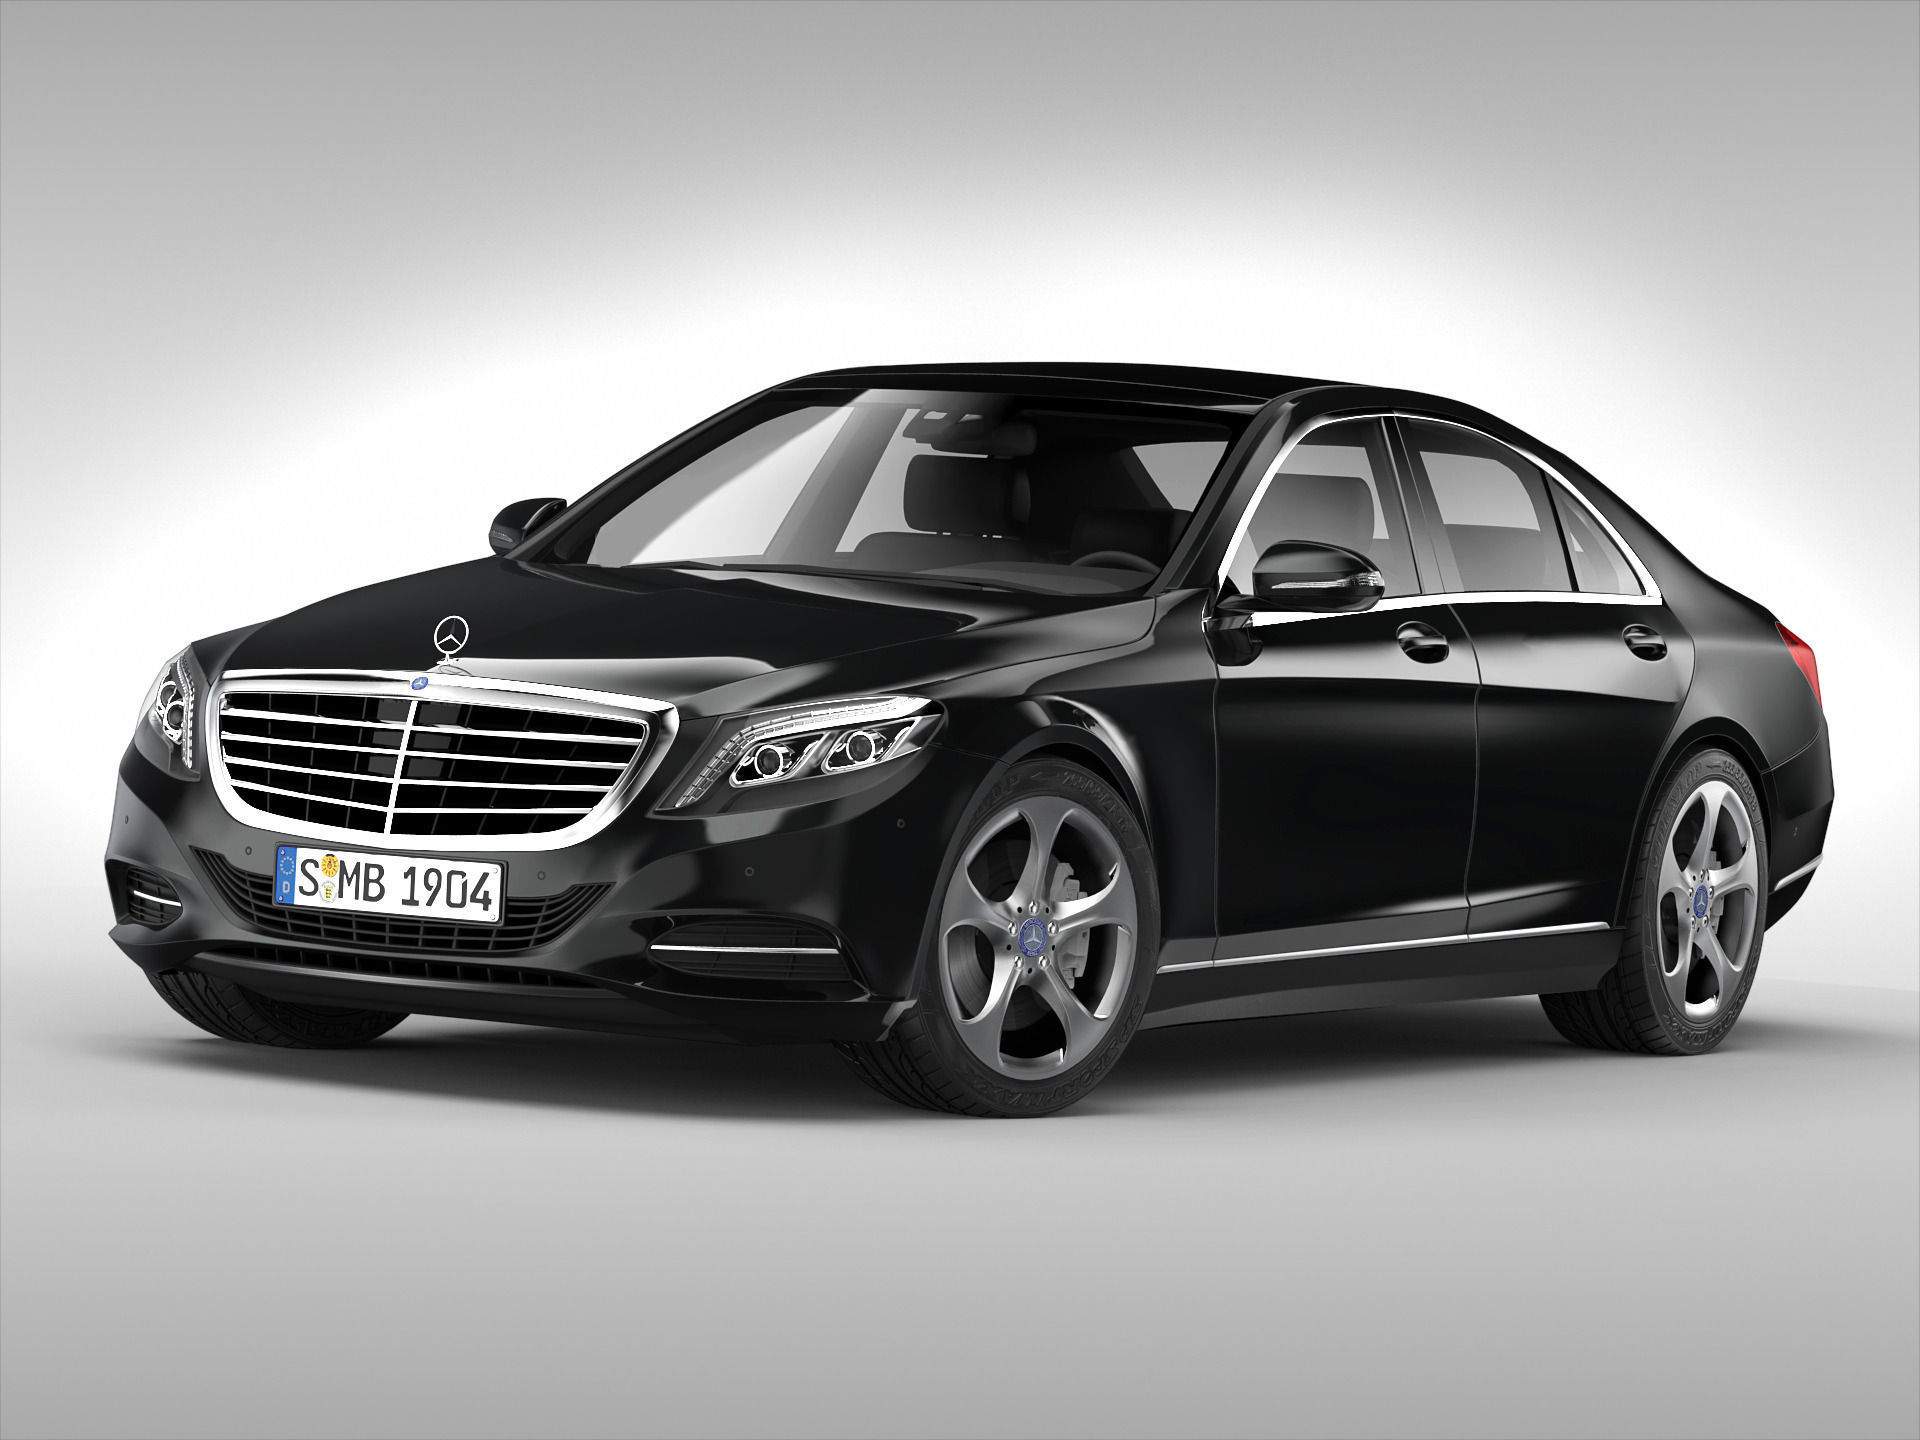 mercedes benz s class 2014 3d model max obj 3ds fbx